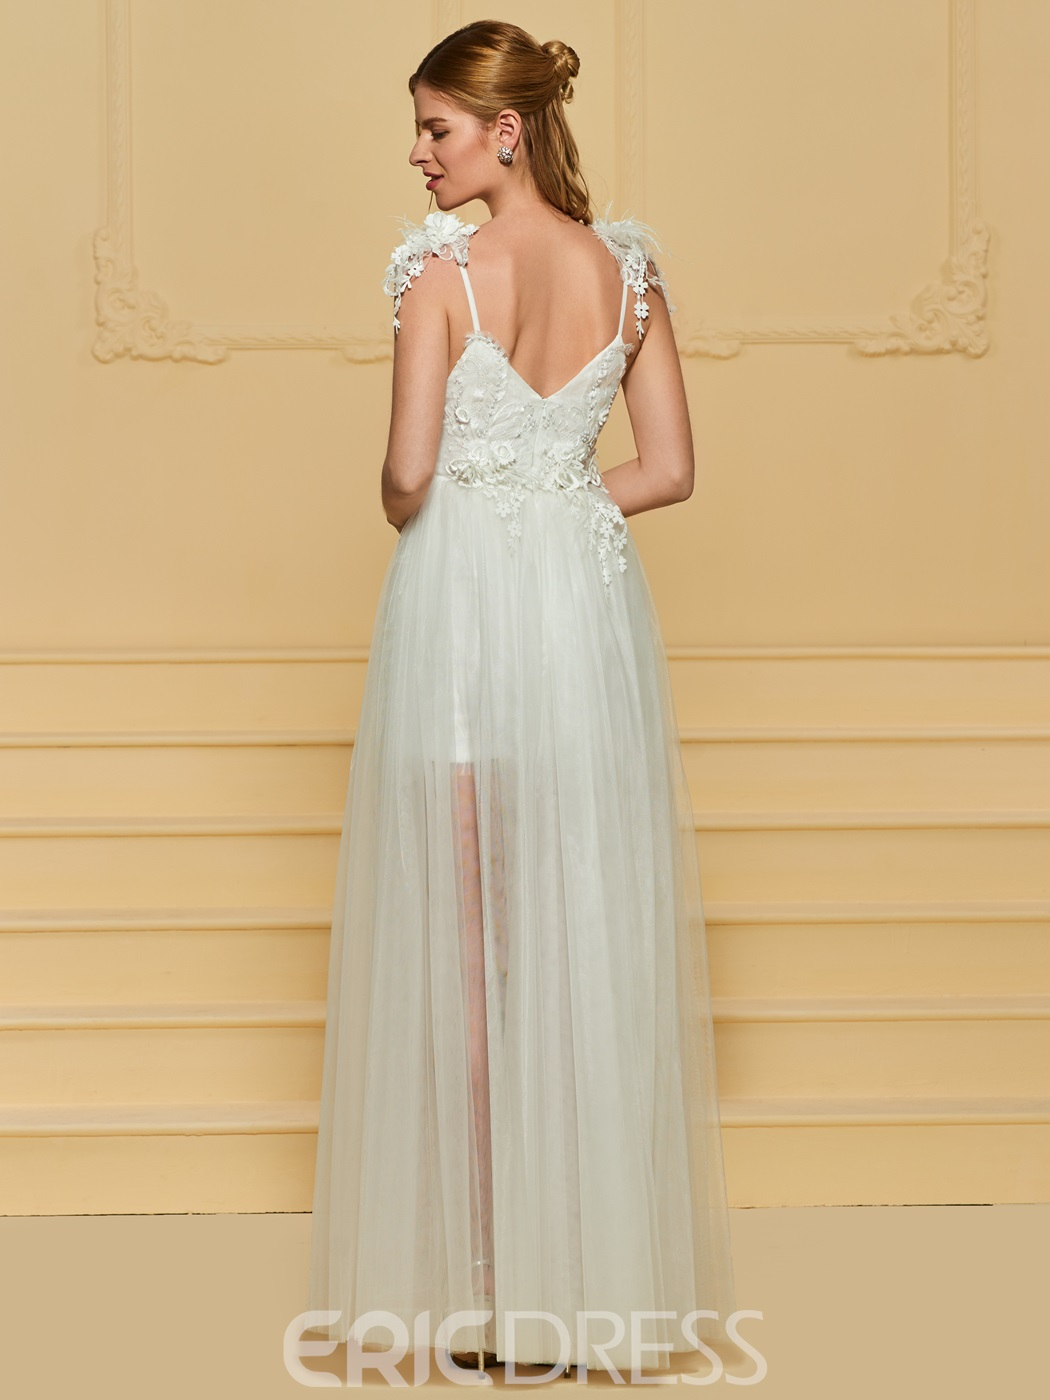 Ericdress Straps Beading Appliques Beach Wedding Dress